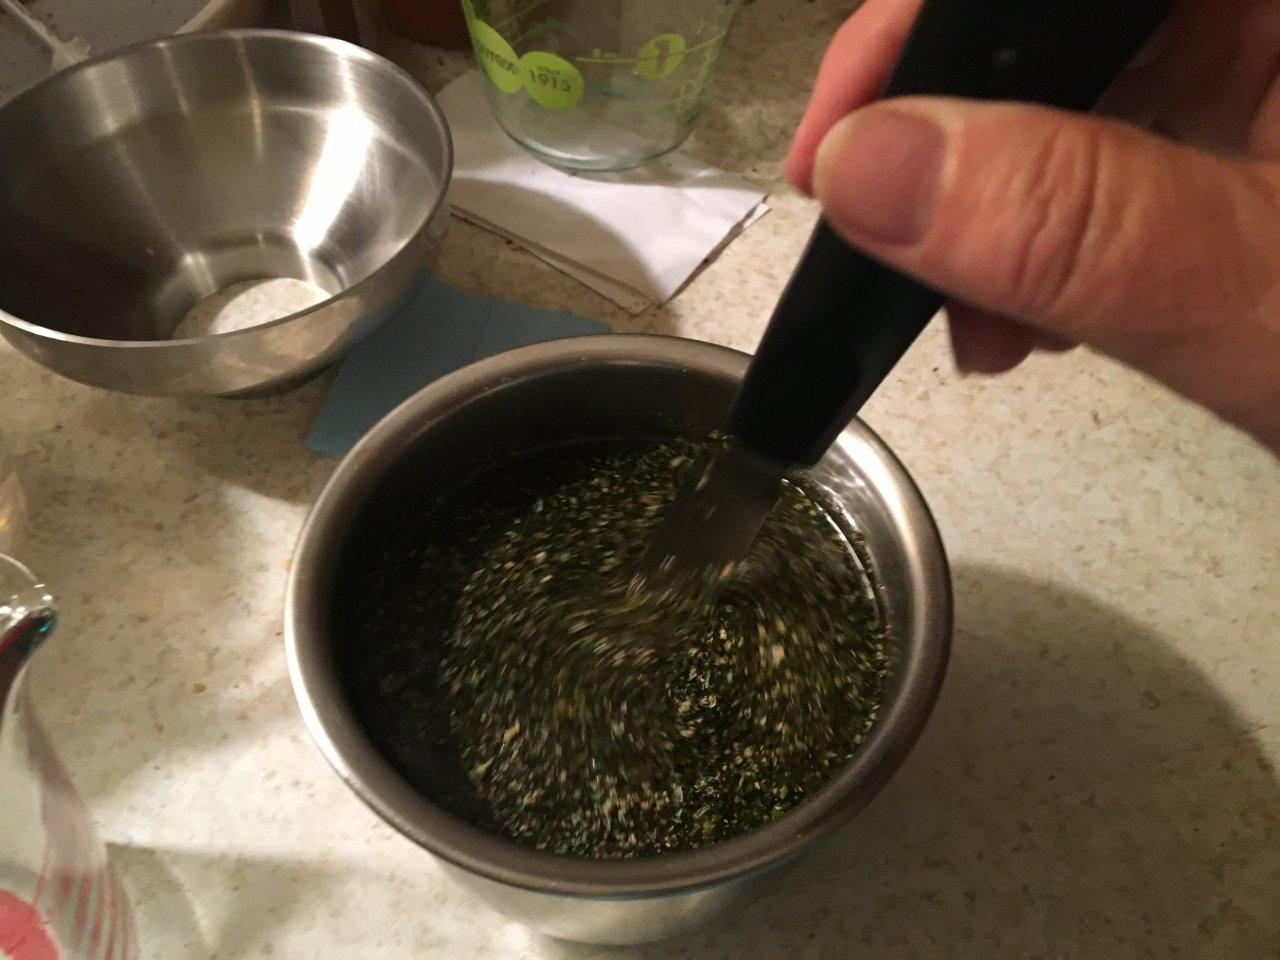 Basic infused cannabis oil